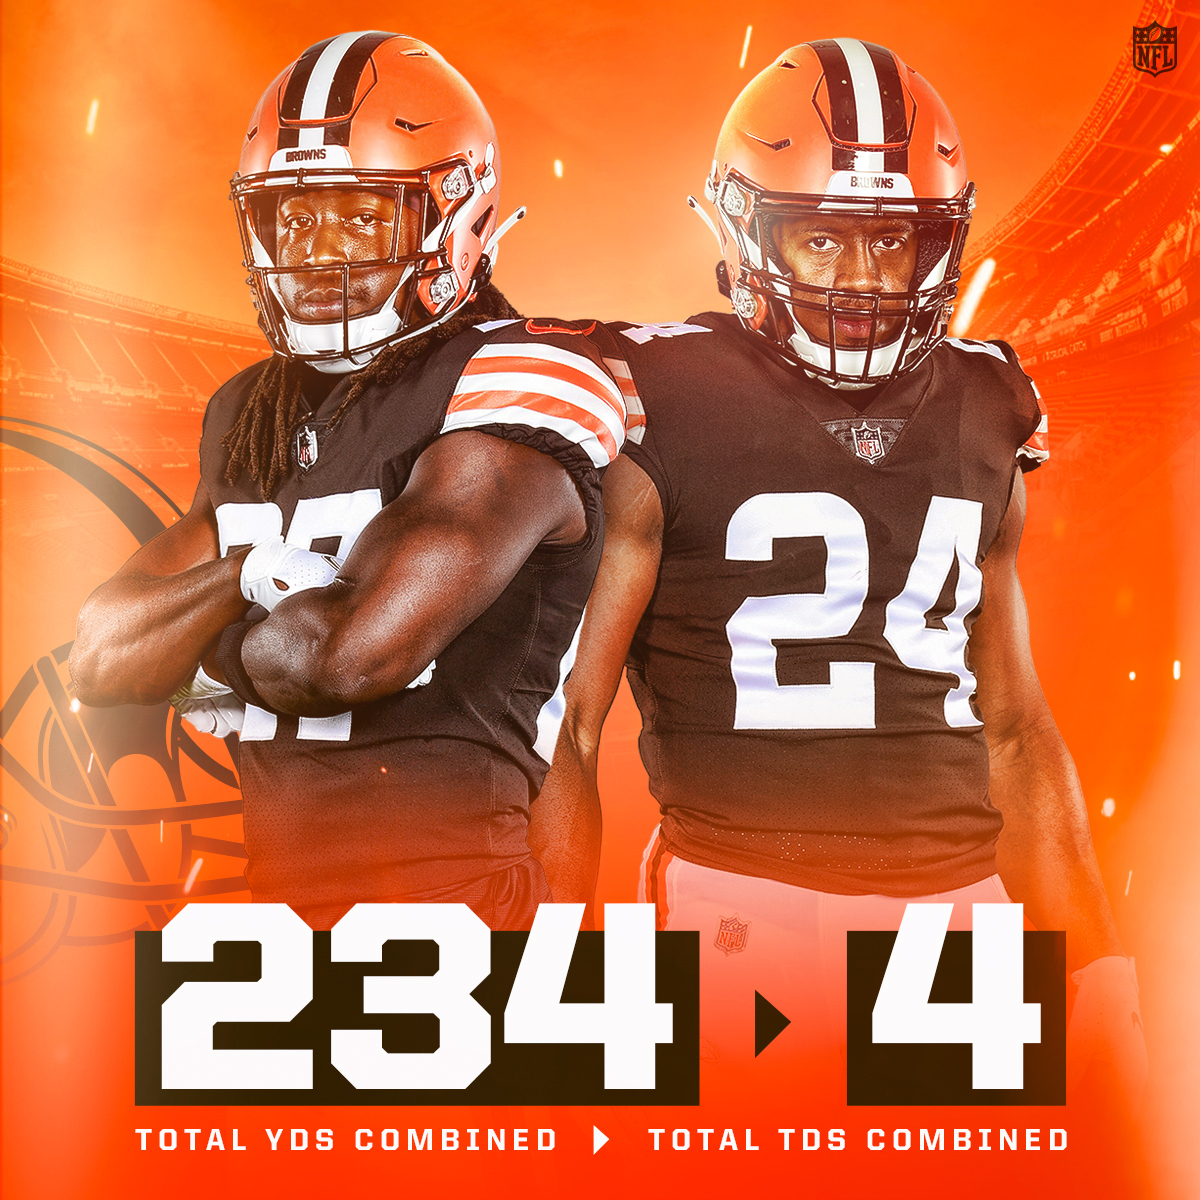 Big prime-time performance from the @Browns rushing duo. #Browns @NickChubb21 | @Kareemhunt7